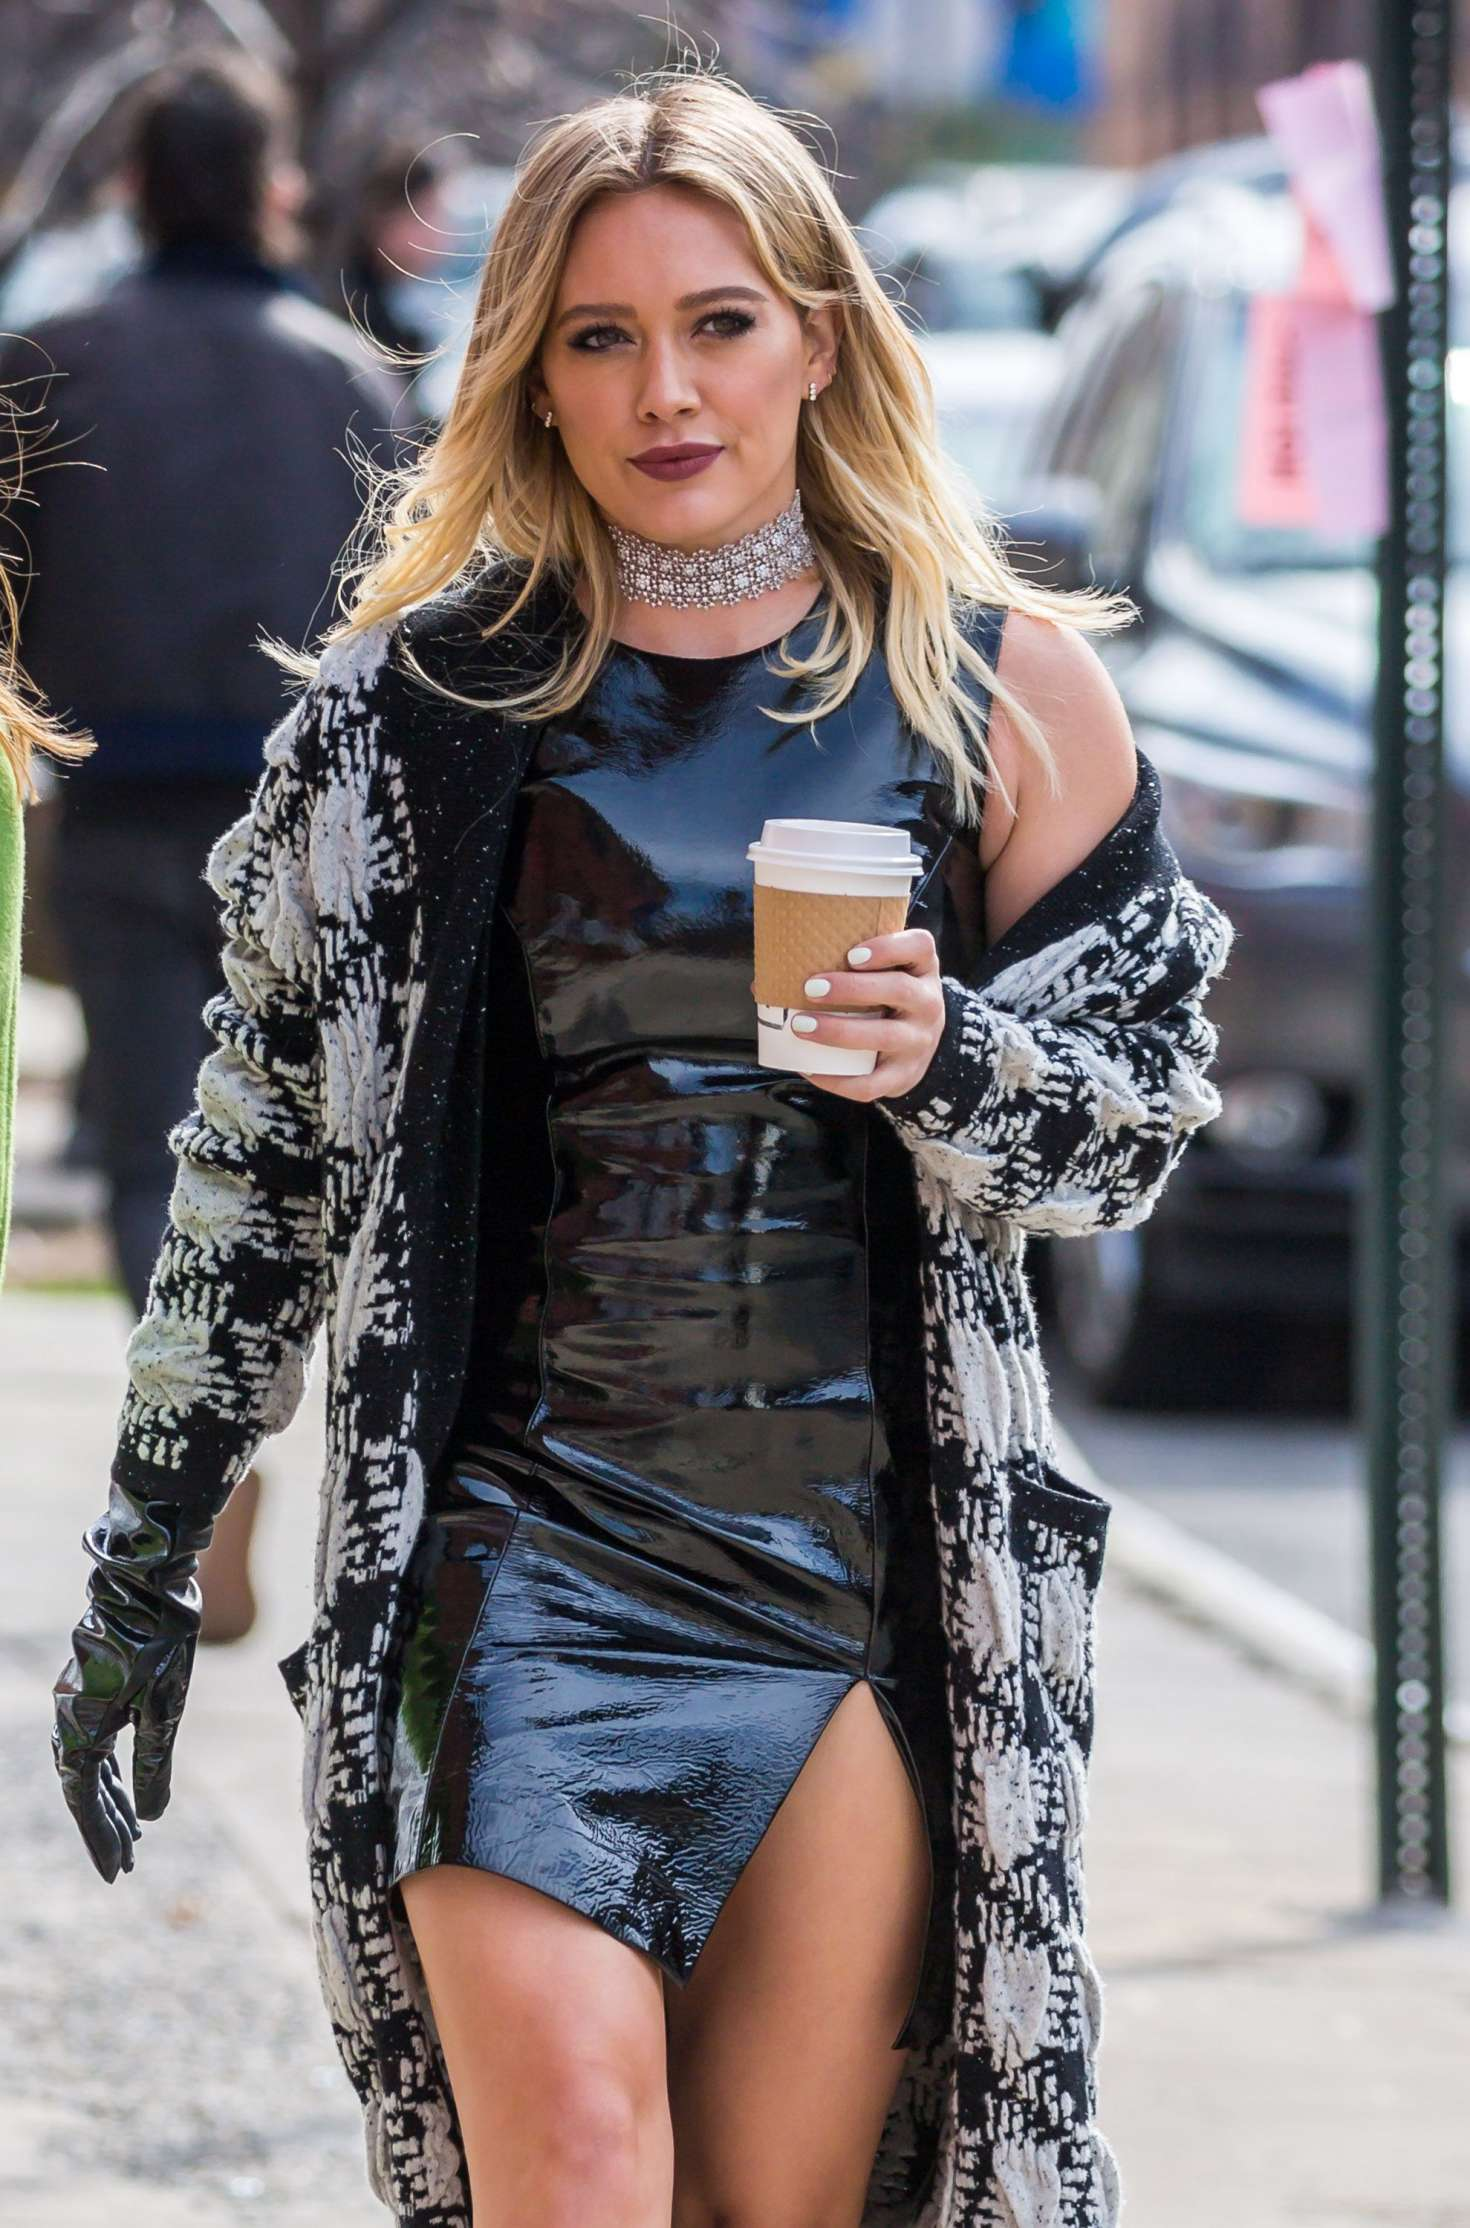 Hilary Duff 2015 : Hilary Duff on the set of Younger -22